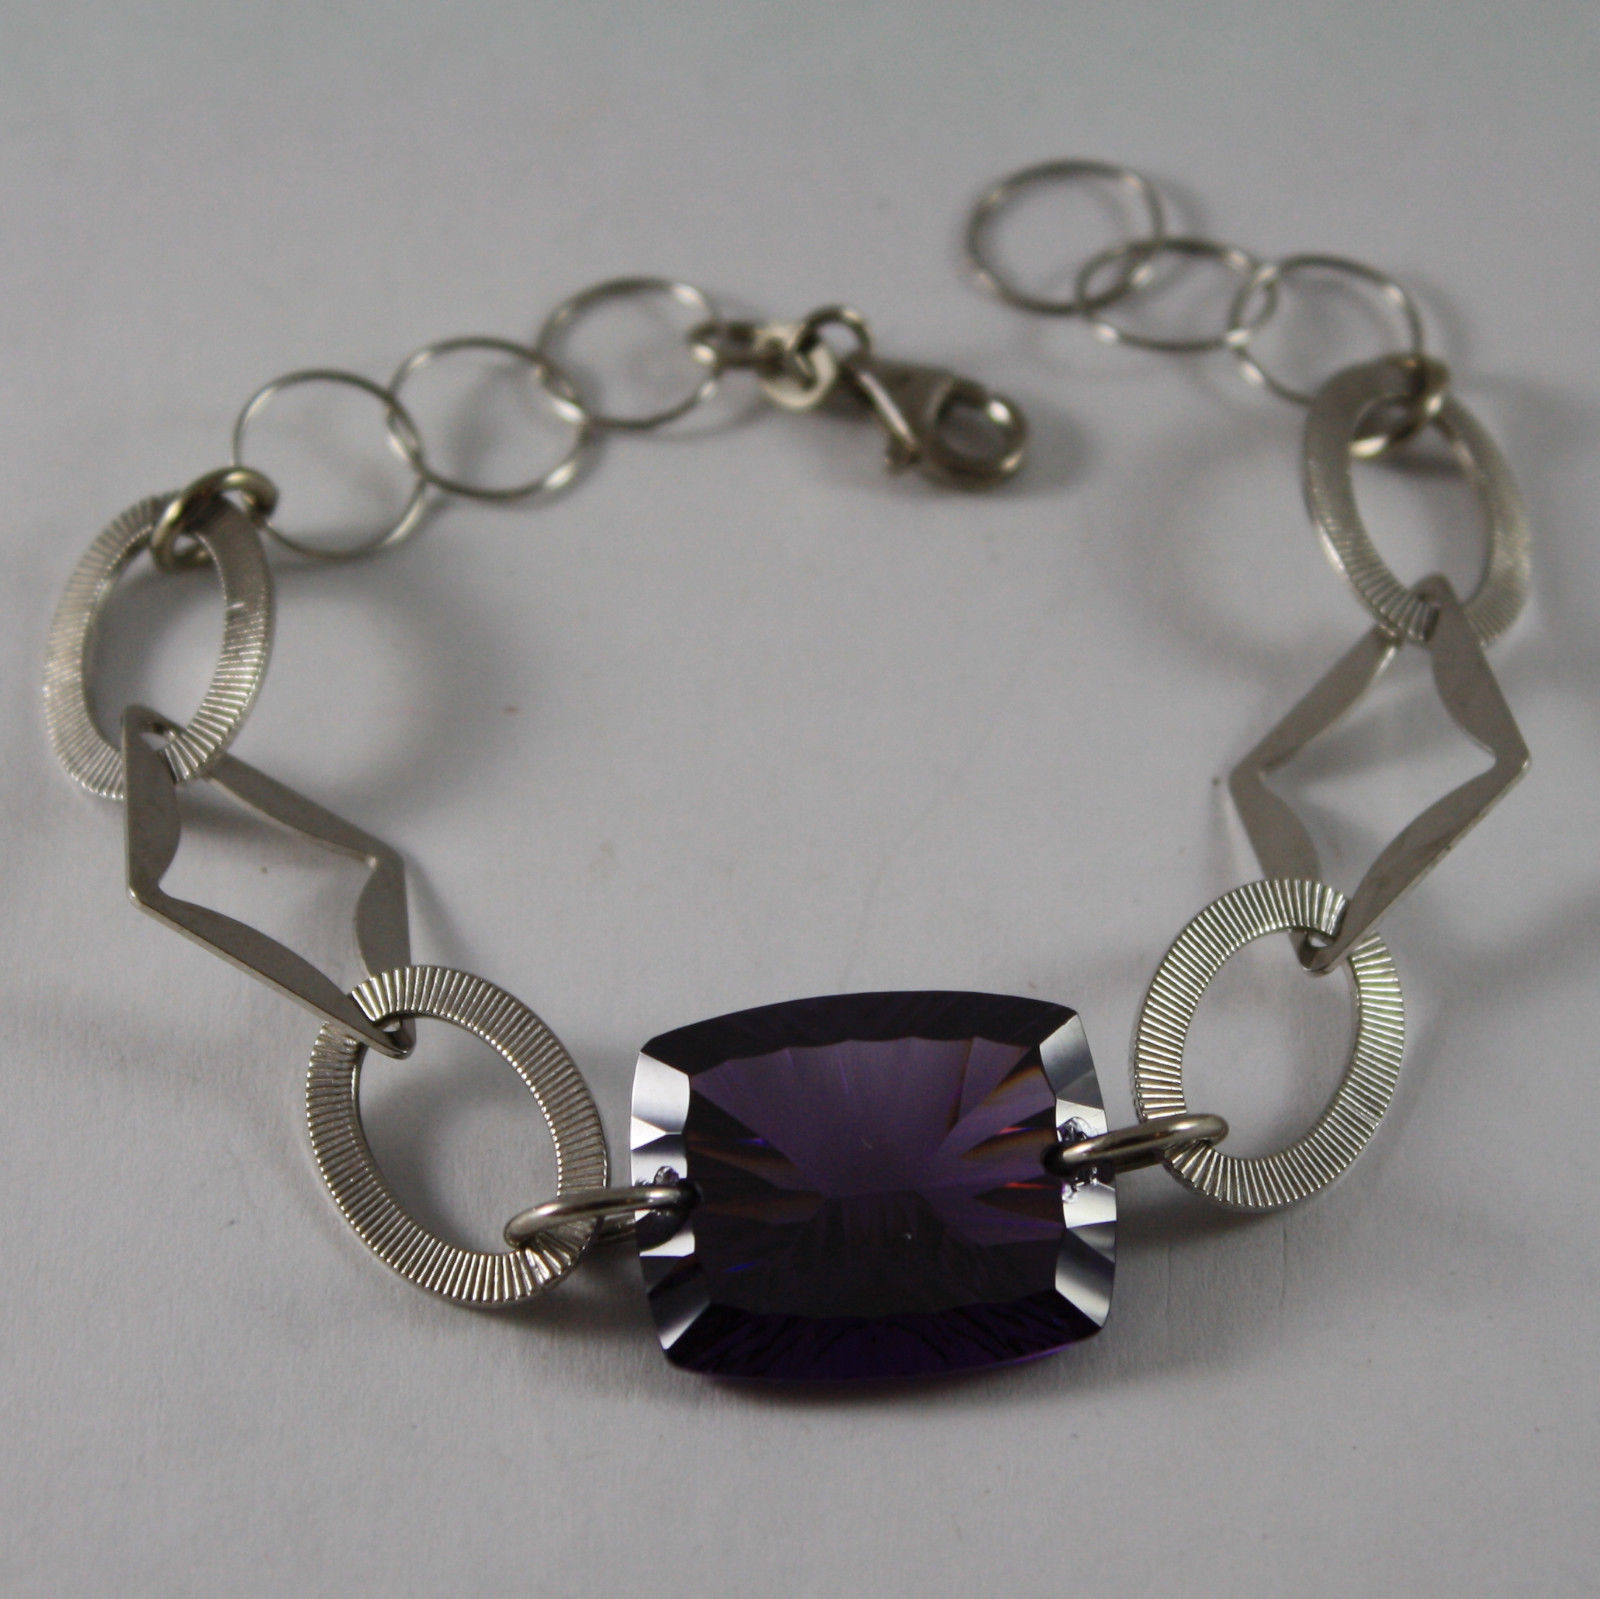 .925 RHODIUM BRACELET WITH PURPLE CRISTAL